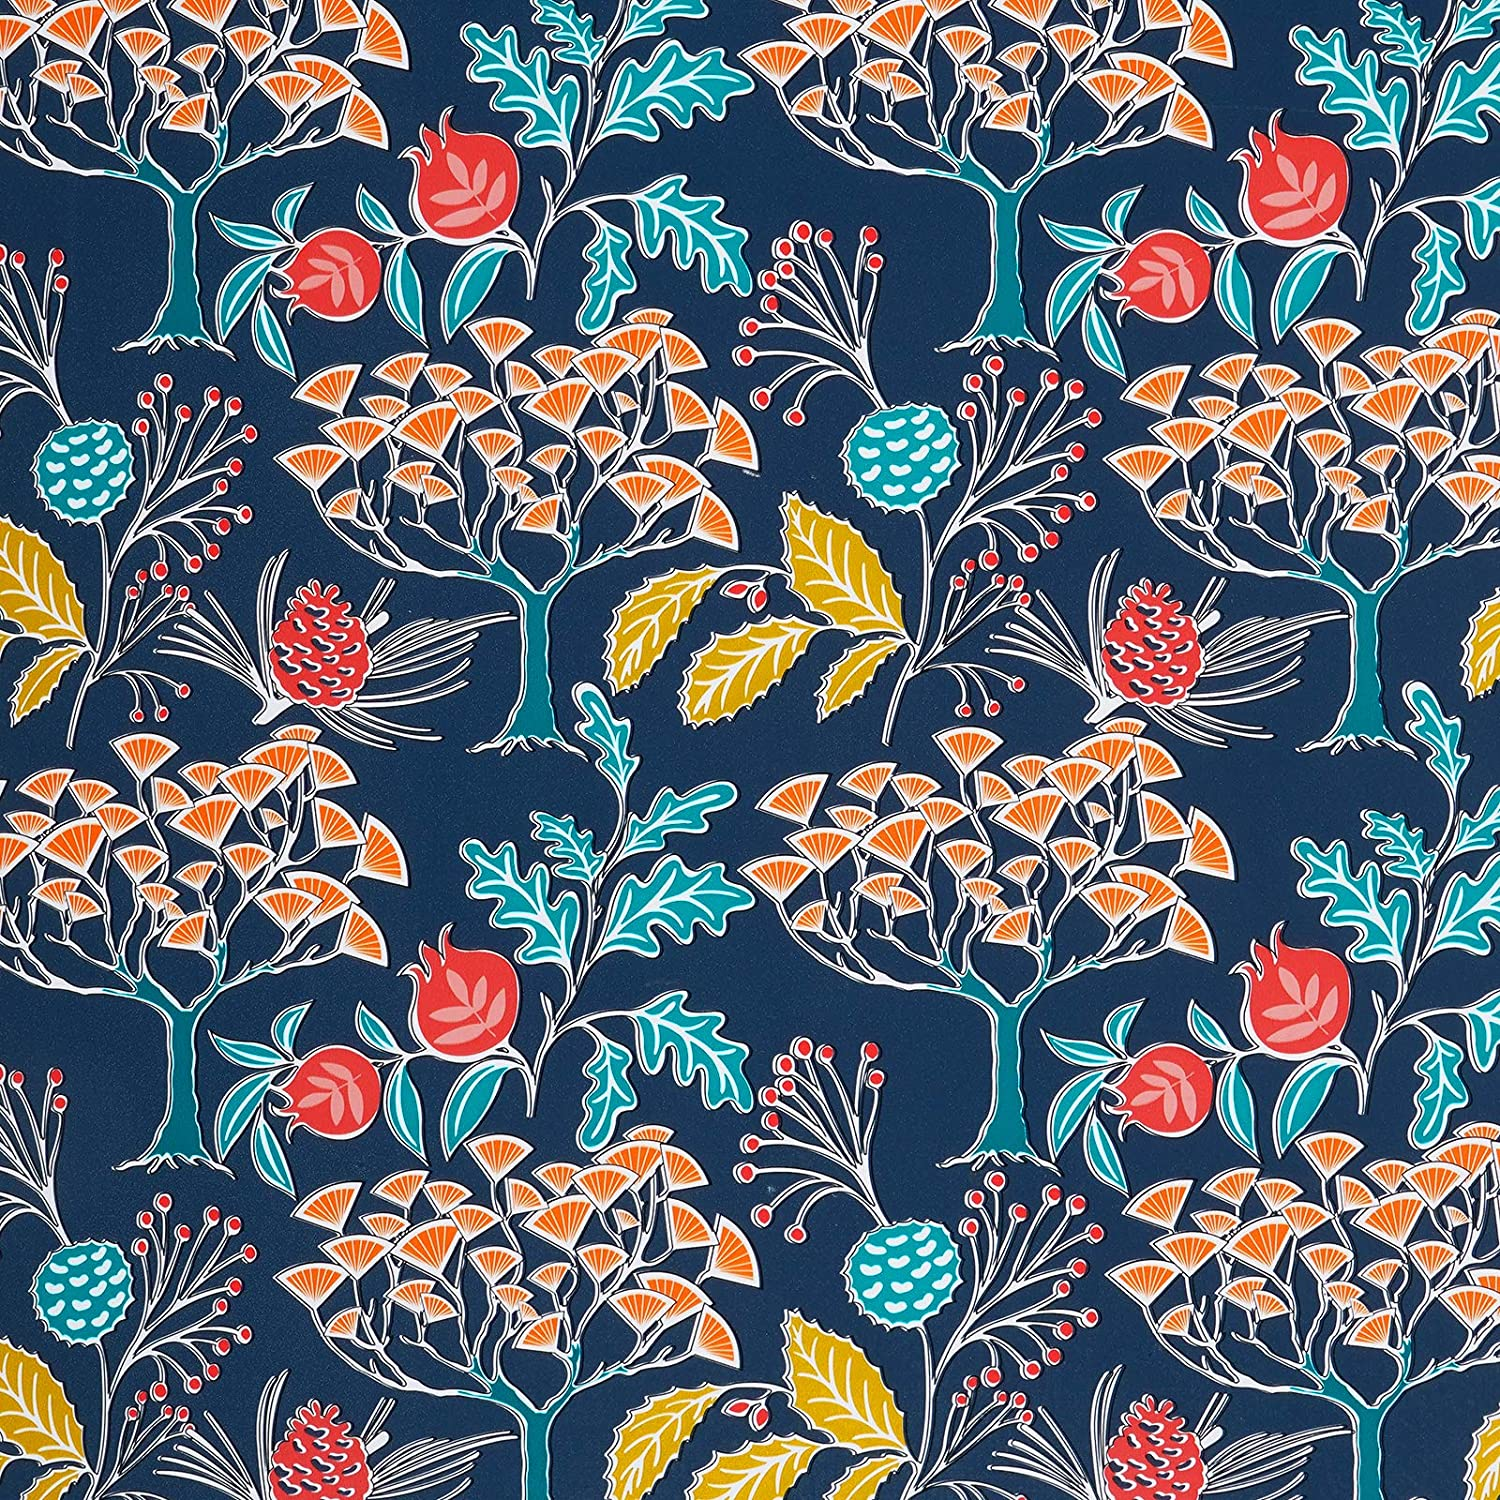 "Melwod Vintage Floral Navy Blue Peel and Stick Removable Wallpaper 17.71"" x 78.7"" Multicolor Decorative Wallpaper Self Adhesive Vinyl for Drawer Liner Shelf Cabinets Furniture Crafts Accent Walls"